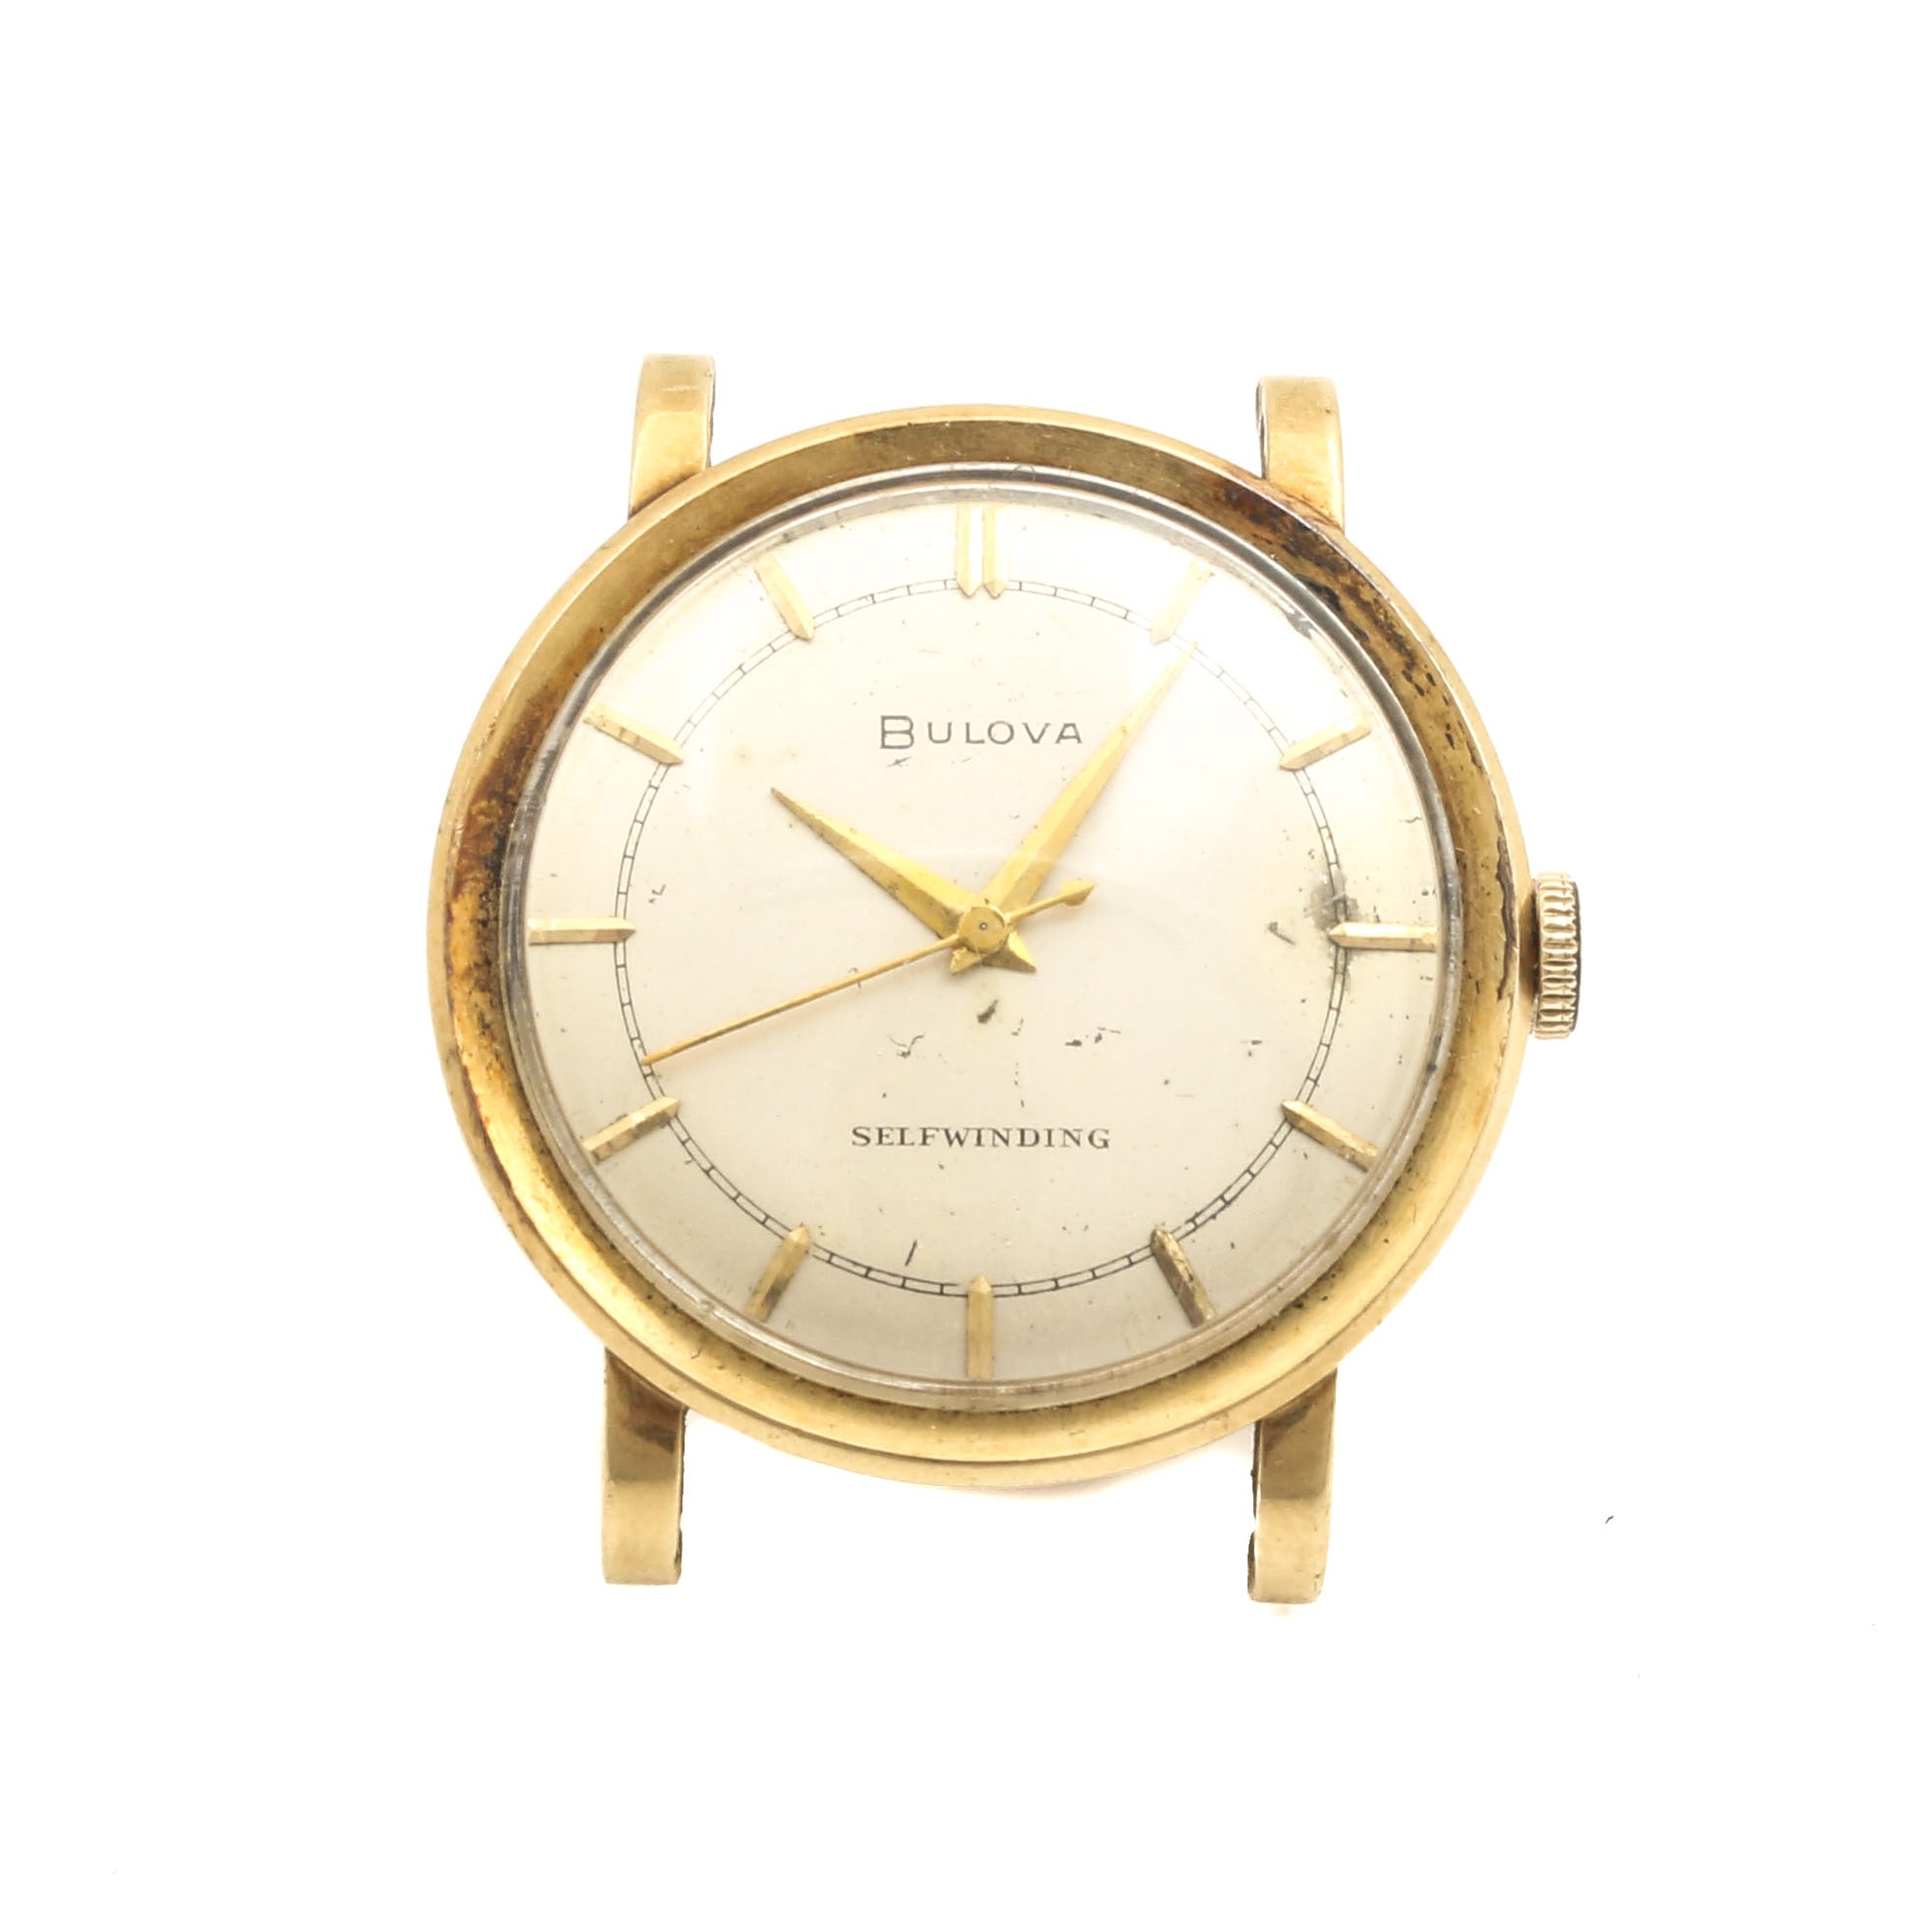 Bulova 14K Yellow Gold Watch Face